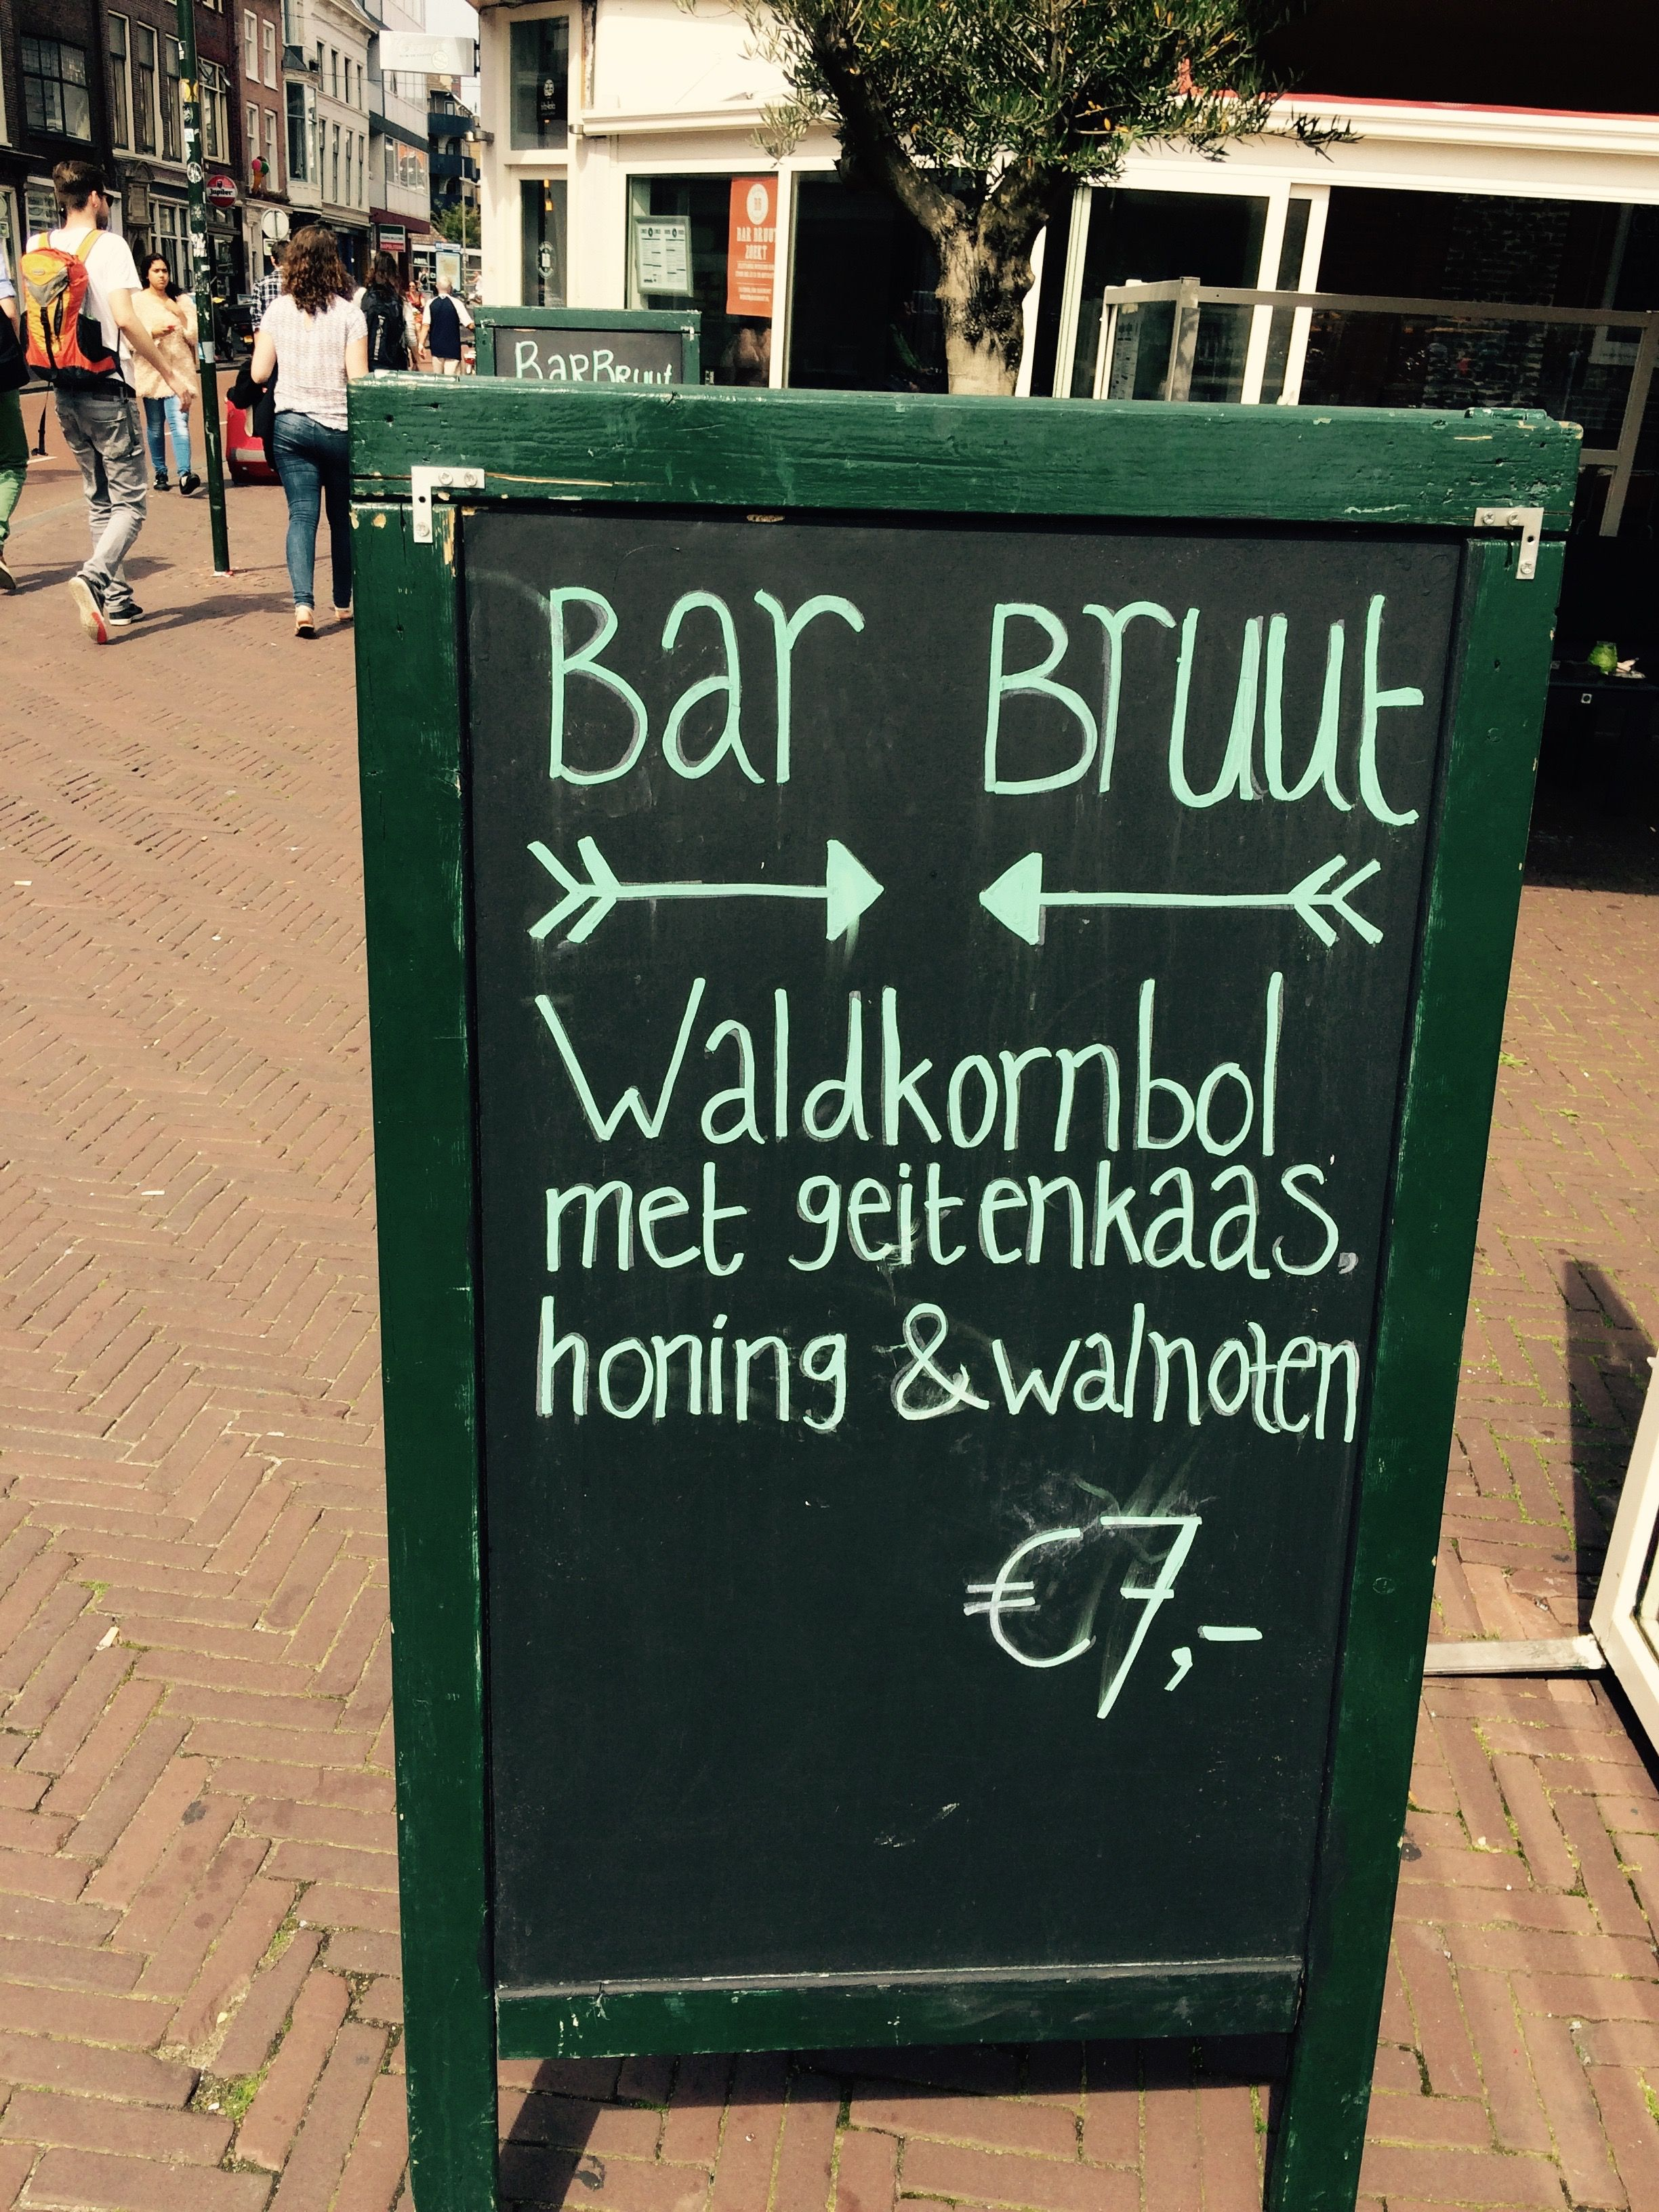 Bar Bruut #Leiden - Horeca Terrasbord Krijtbord Stoepbord Reclame Marketing